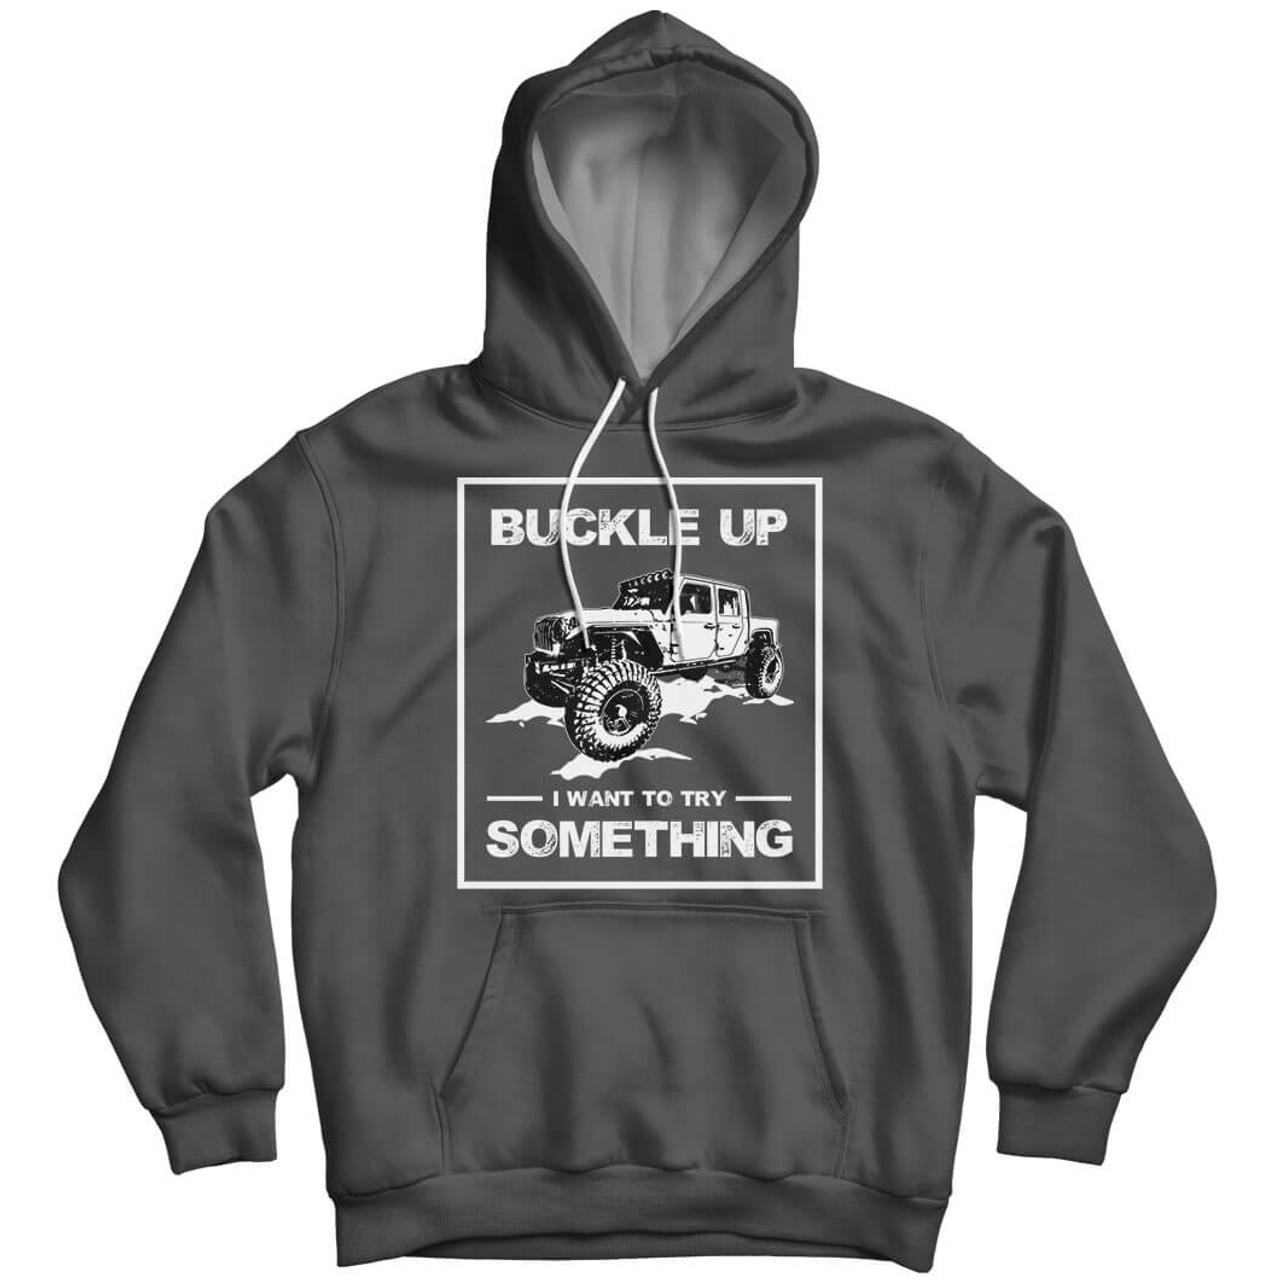 Buckle Up I Want To Try Something - Hoodie